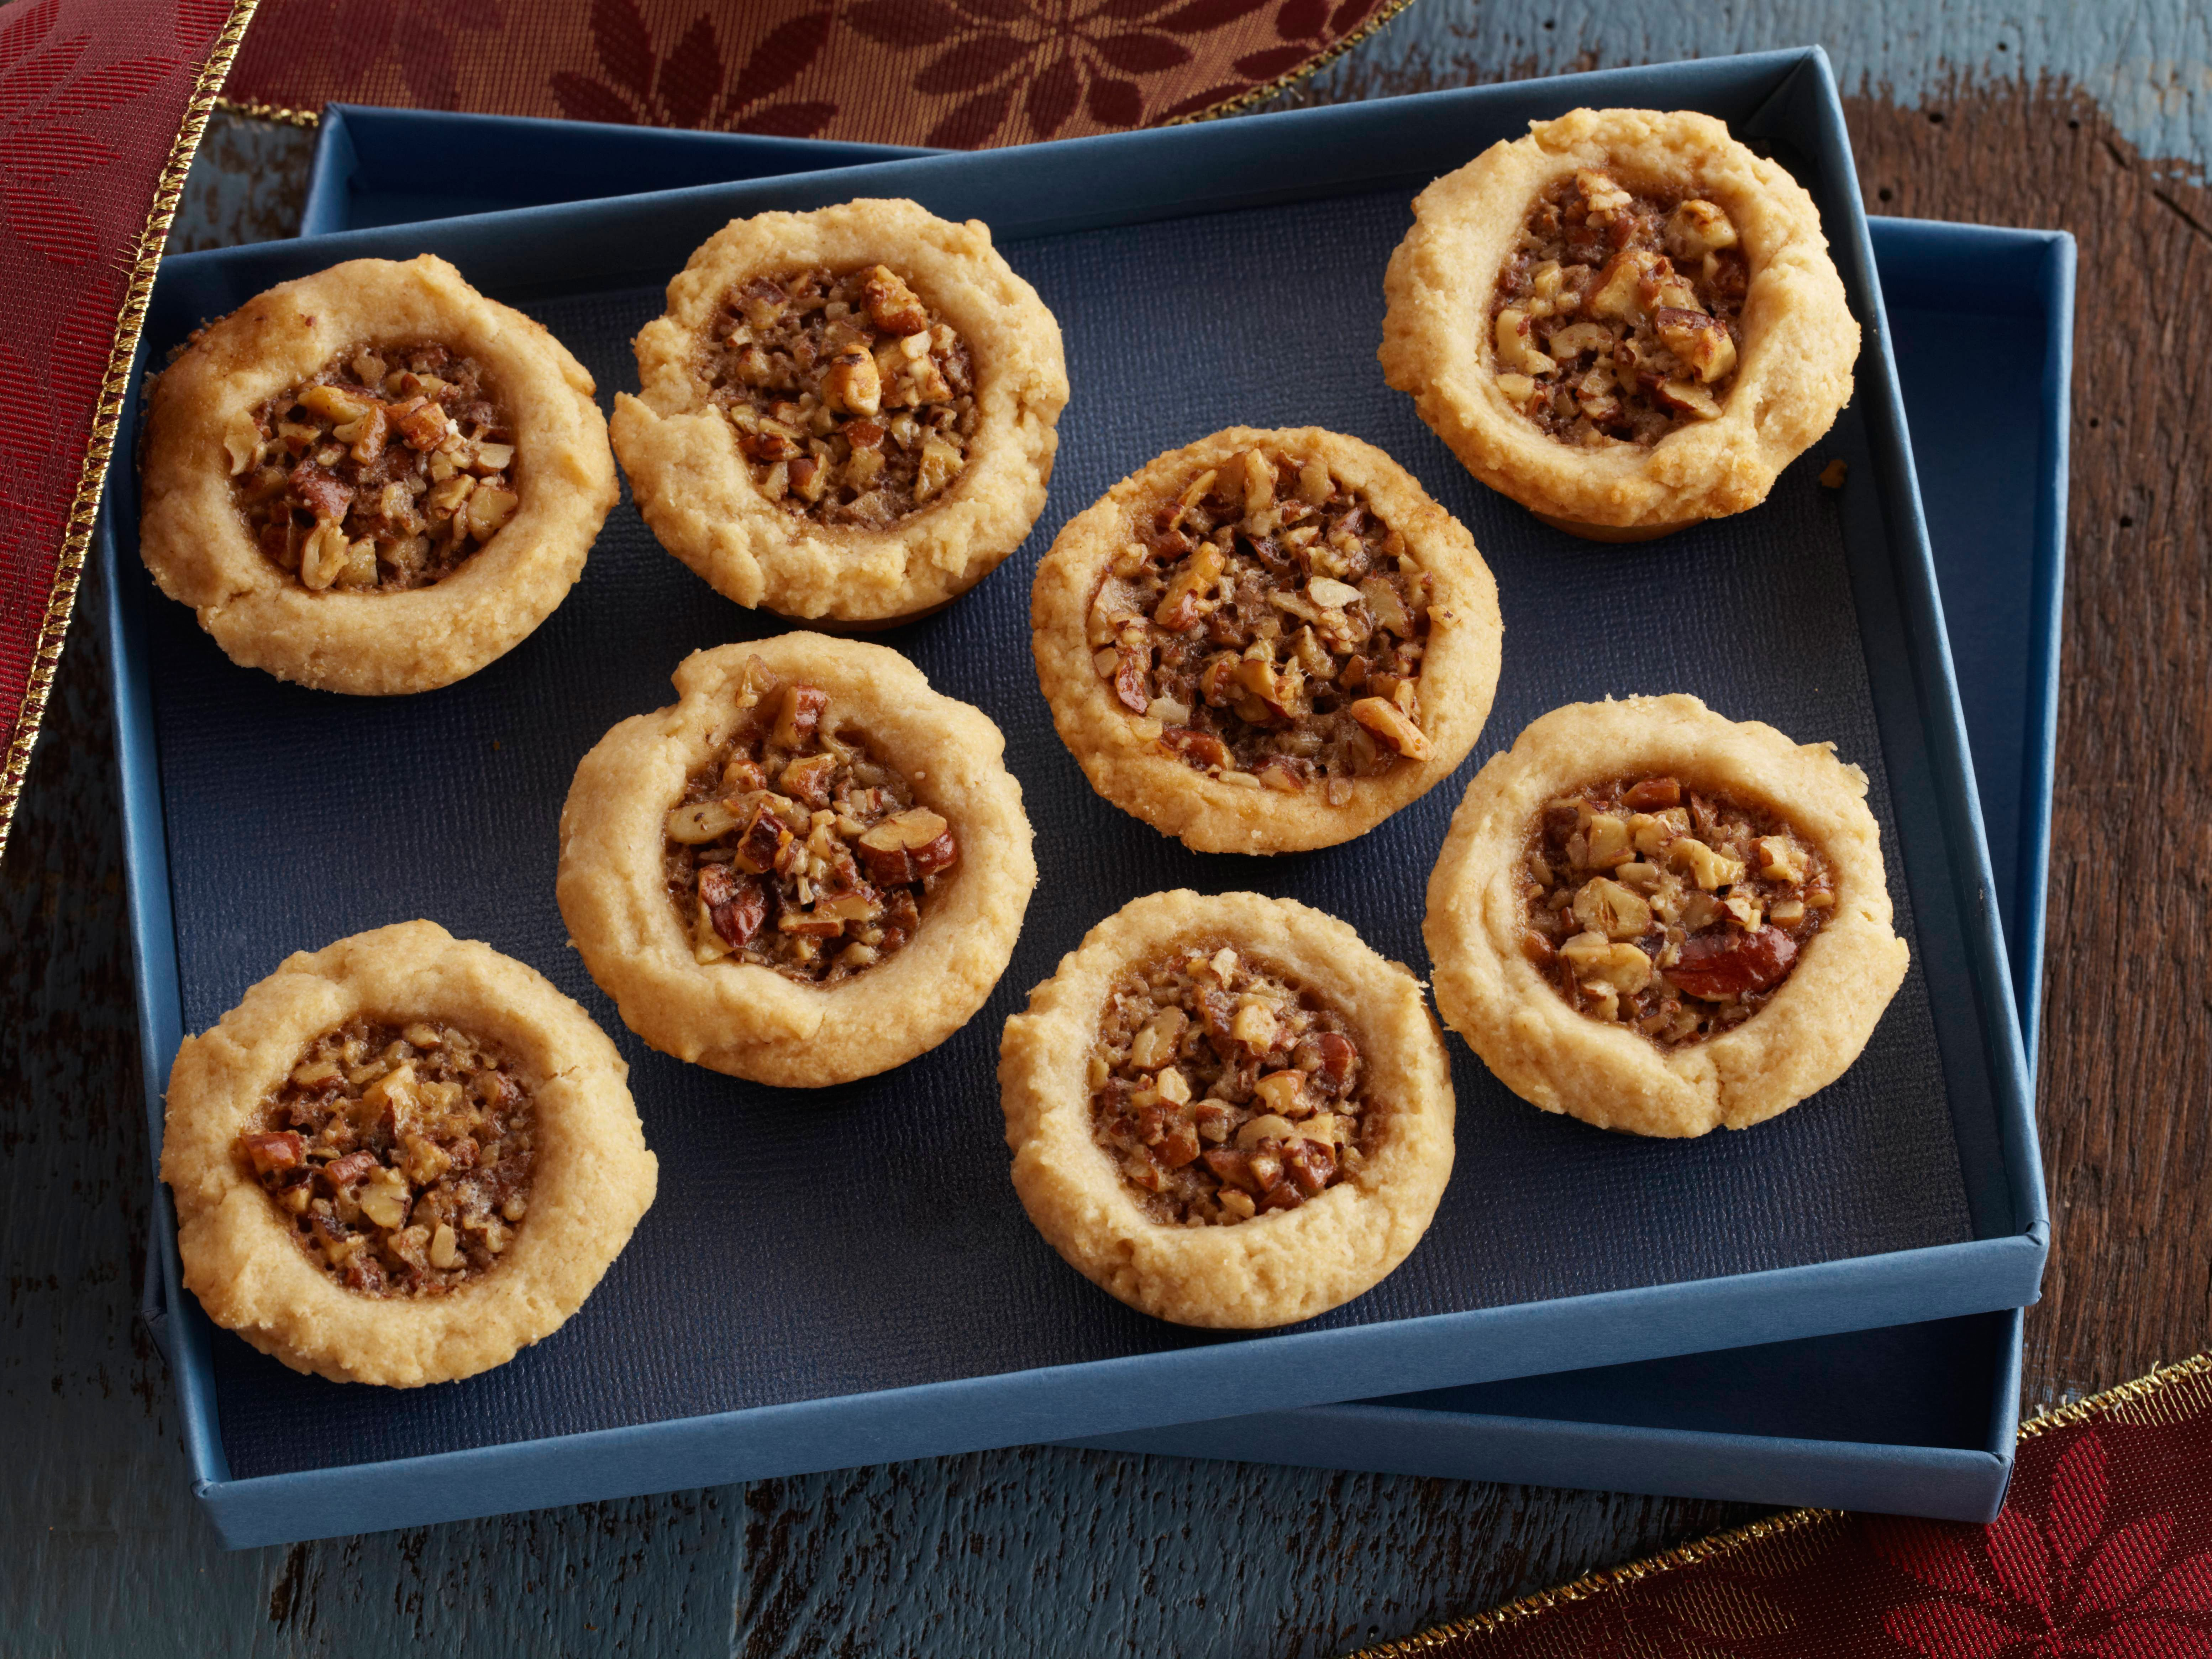 Bobbys pecan christmas tassie from cookingchanneltv food and bobbys pecan christmas tassie from cooking channel forumfinder Choice Image